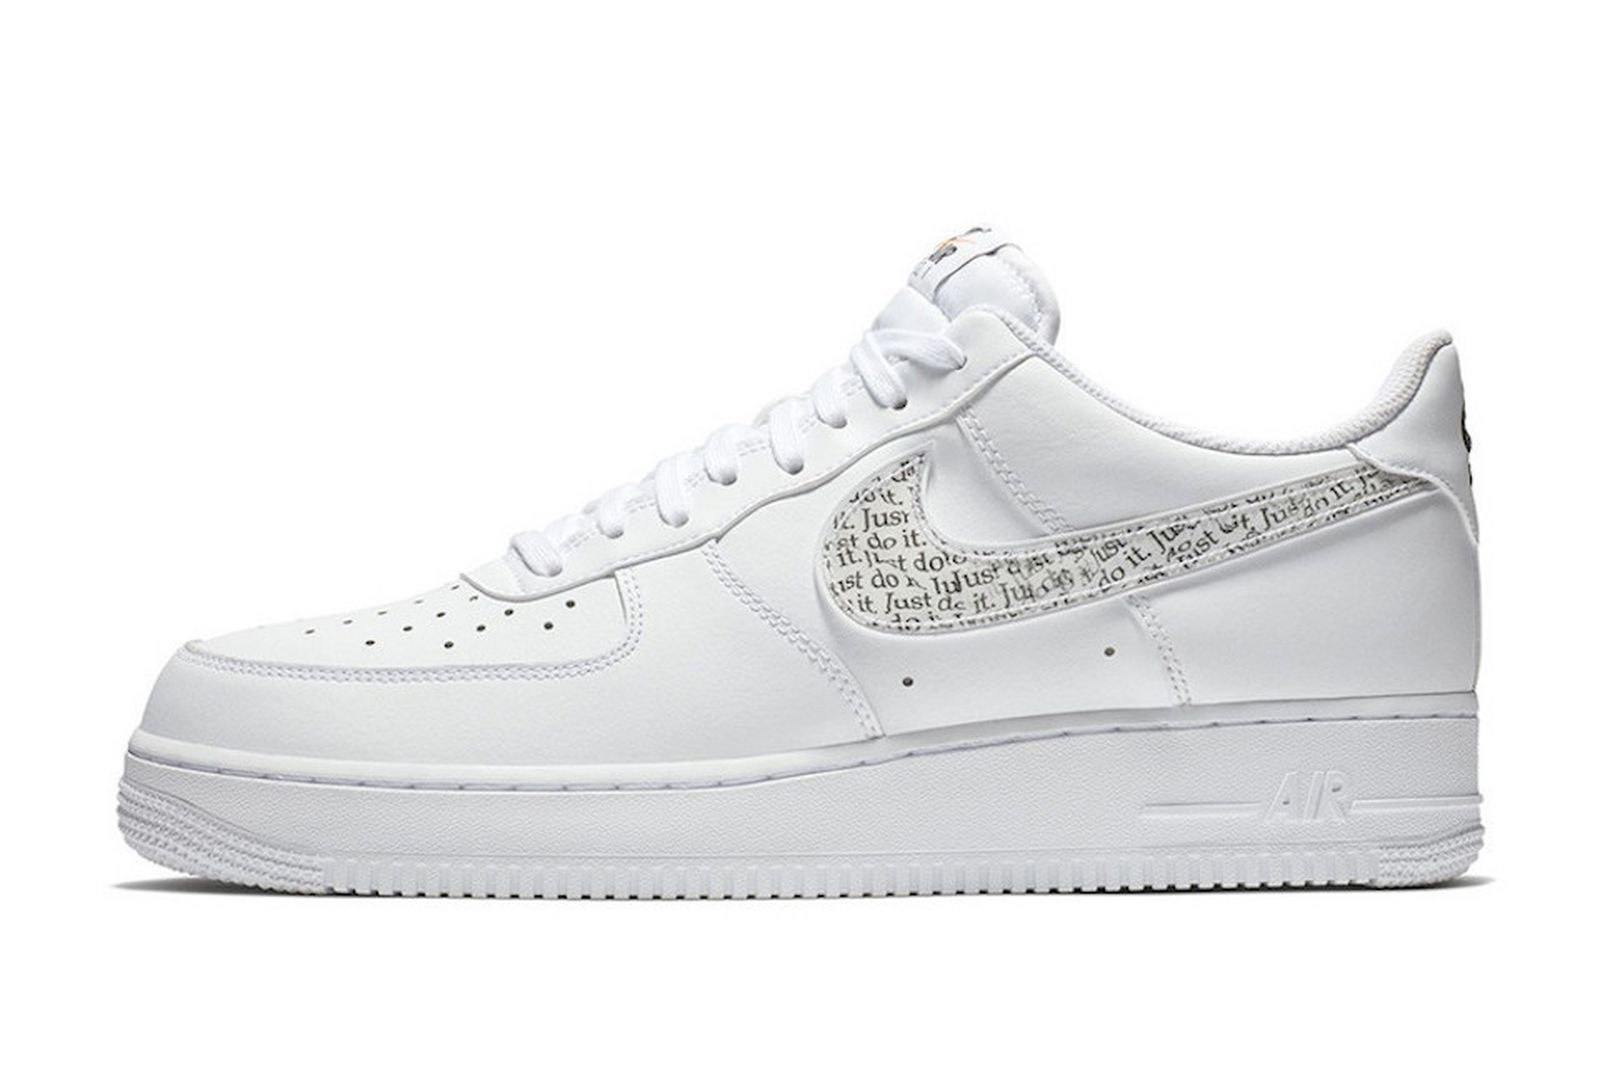 air force 1 just doit